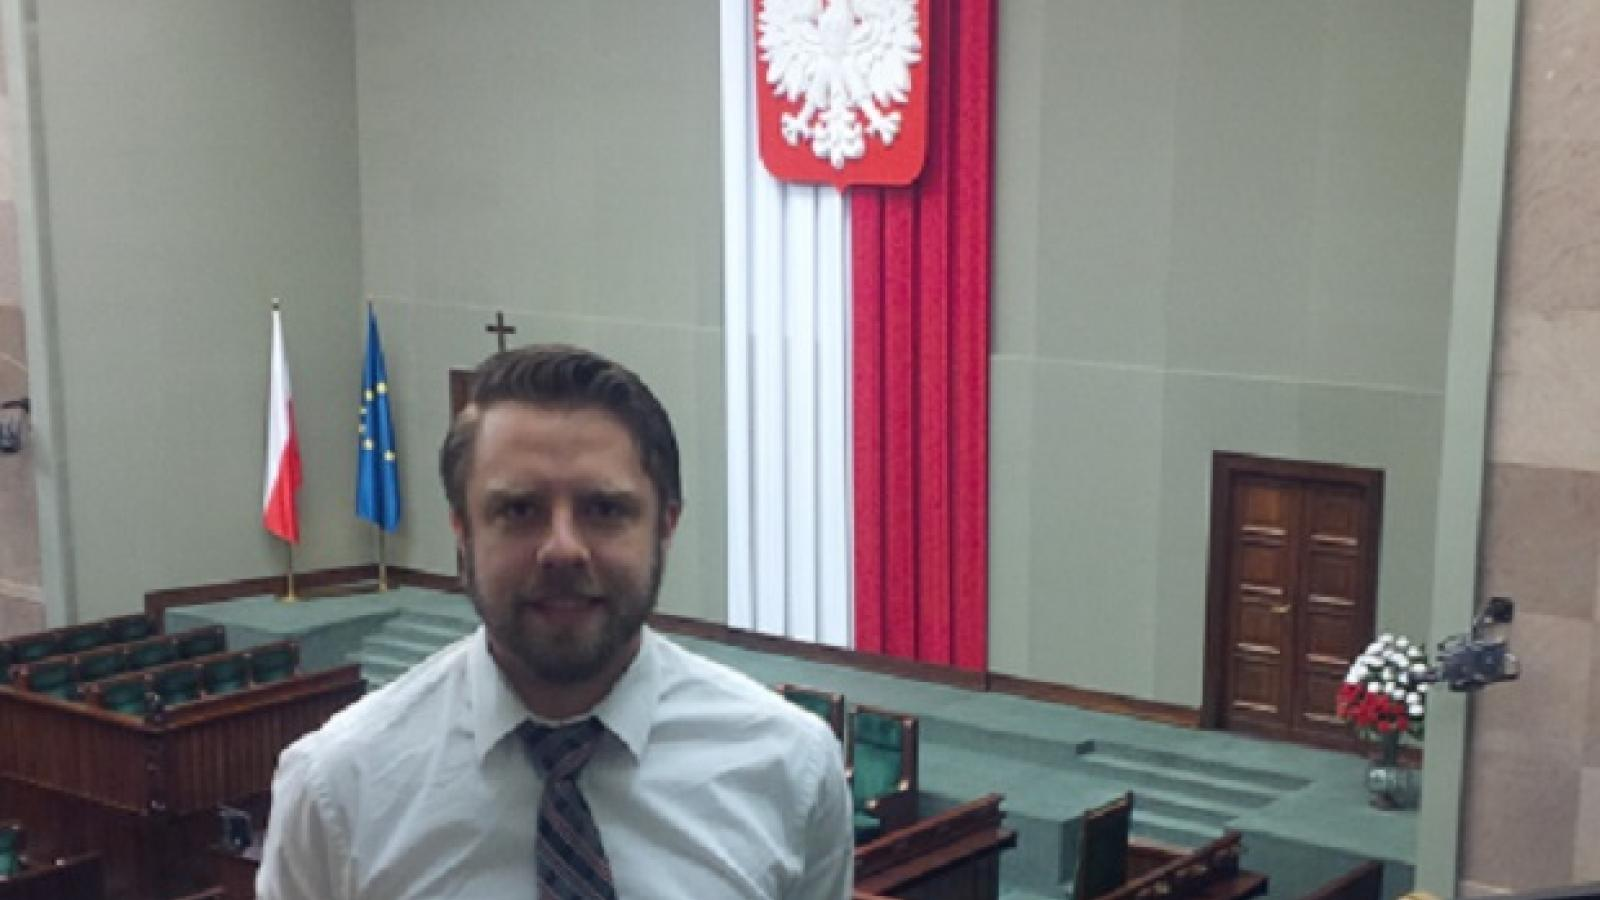 Peter Tunkis at the Press Gallery of the Plenary Hall at the Sejm in Poland